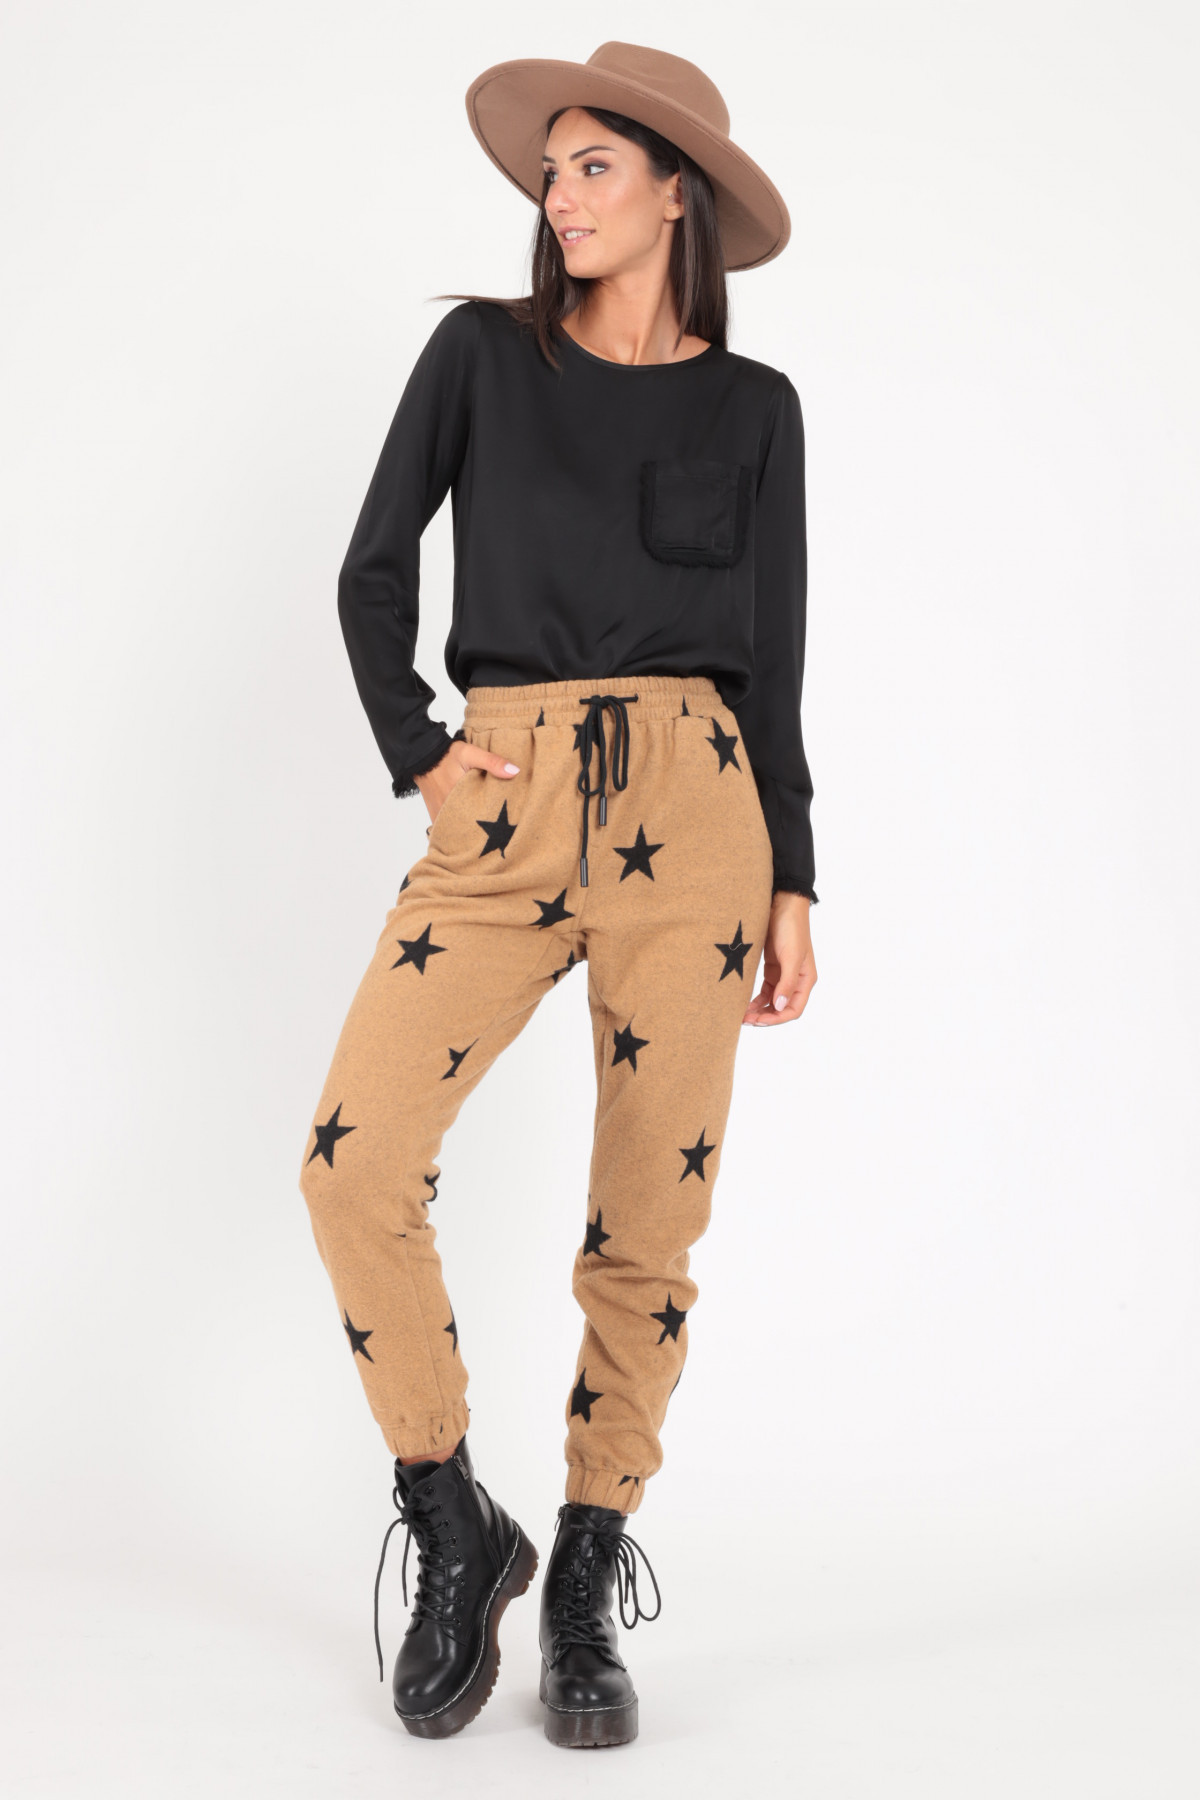 Jogger Style Pants in Star Fantasy Print